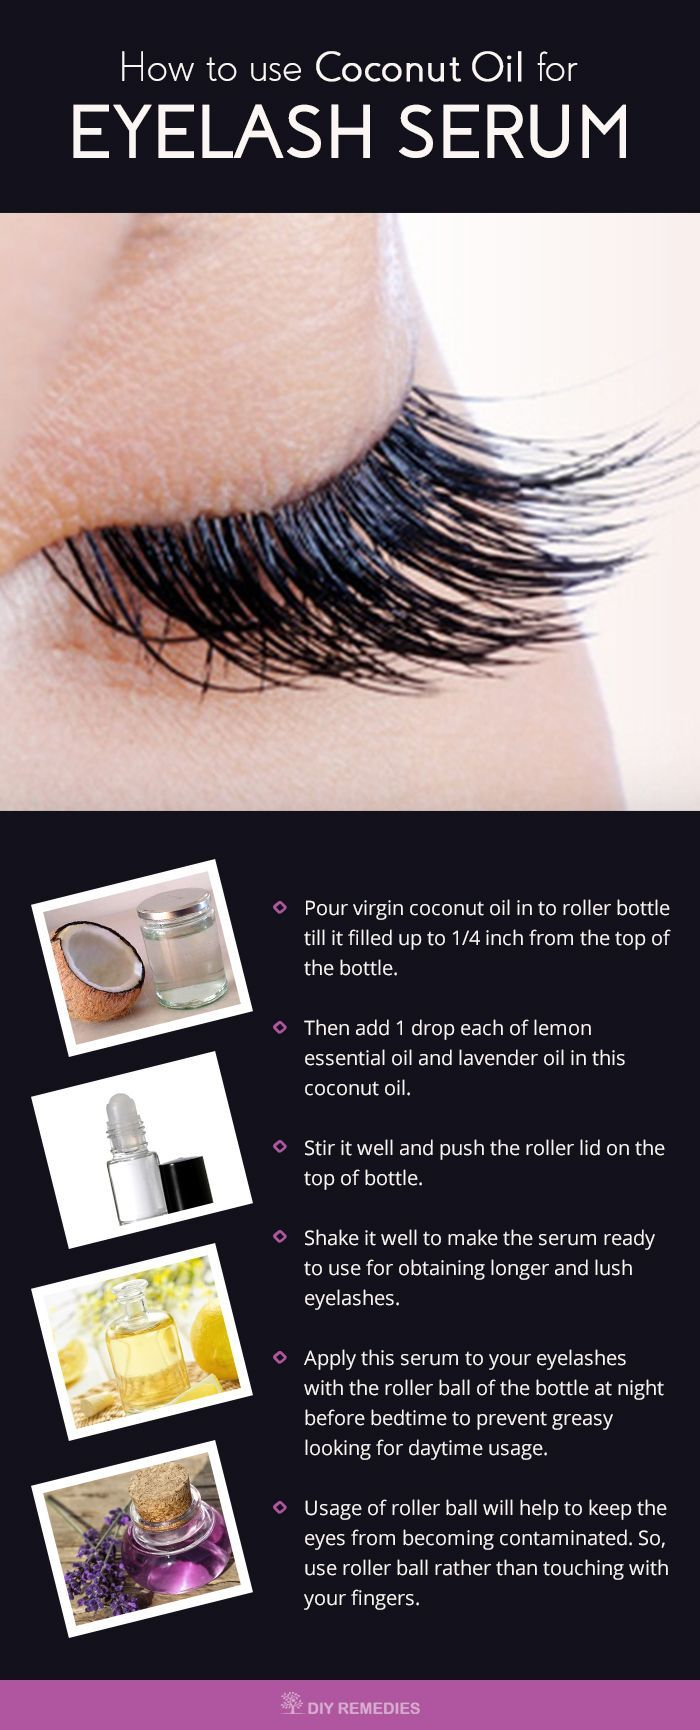 How To Use Coconut Oil For Eyelashes Dry Hair Pinterest Makeup